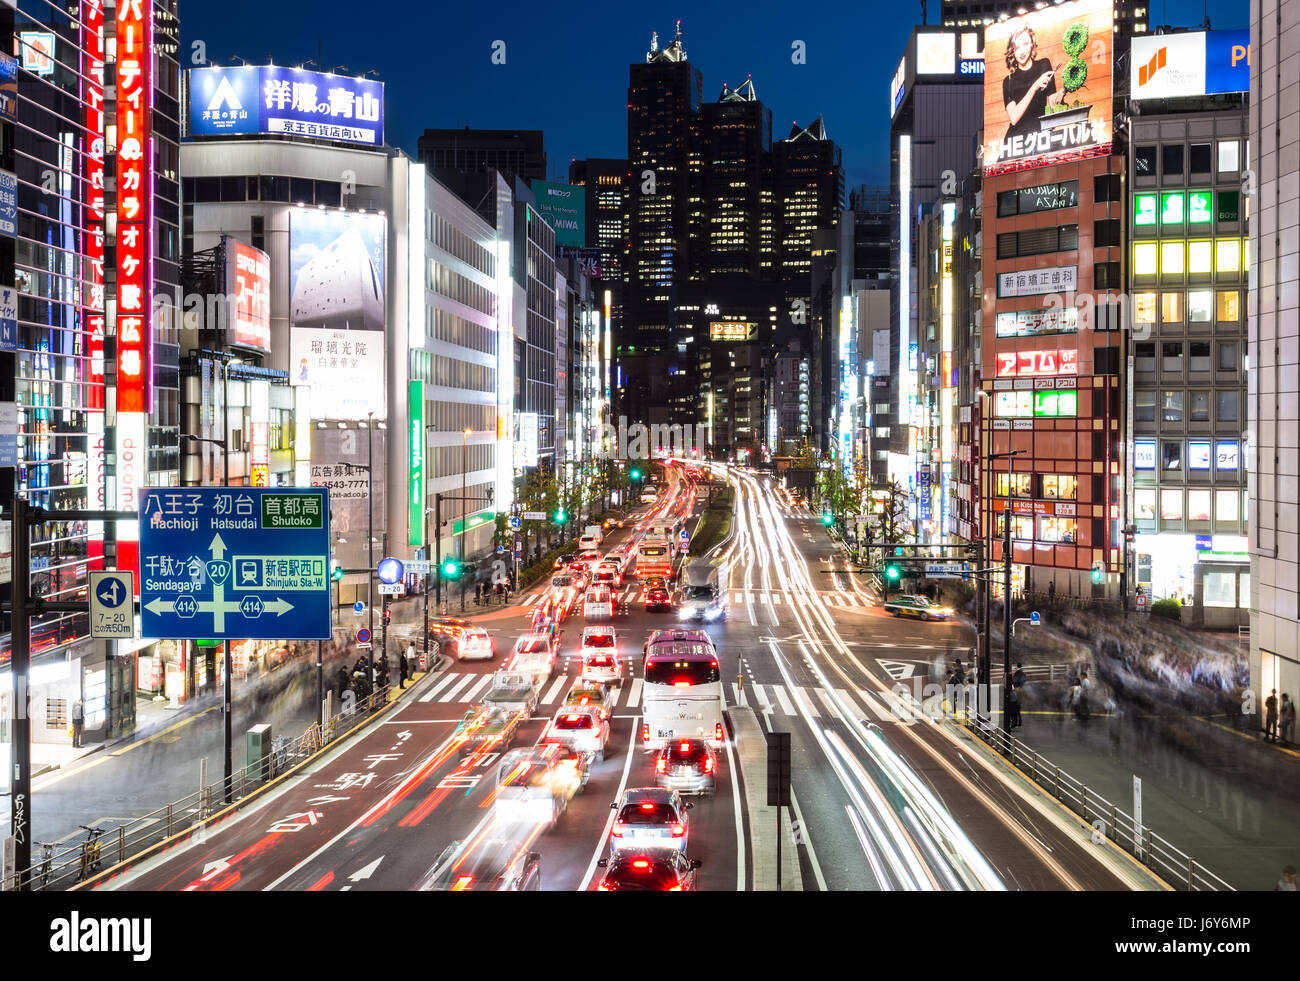 TOKYO - MAY 2, 2017: Traffic, captured with blurred motion, rushes through the busy streets of  the Shinjuku business - Stock Image